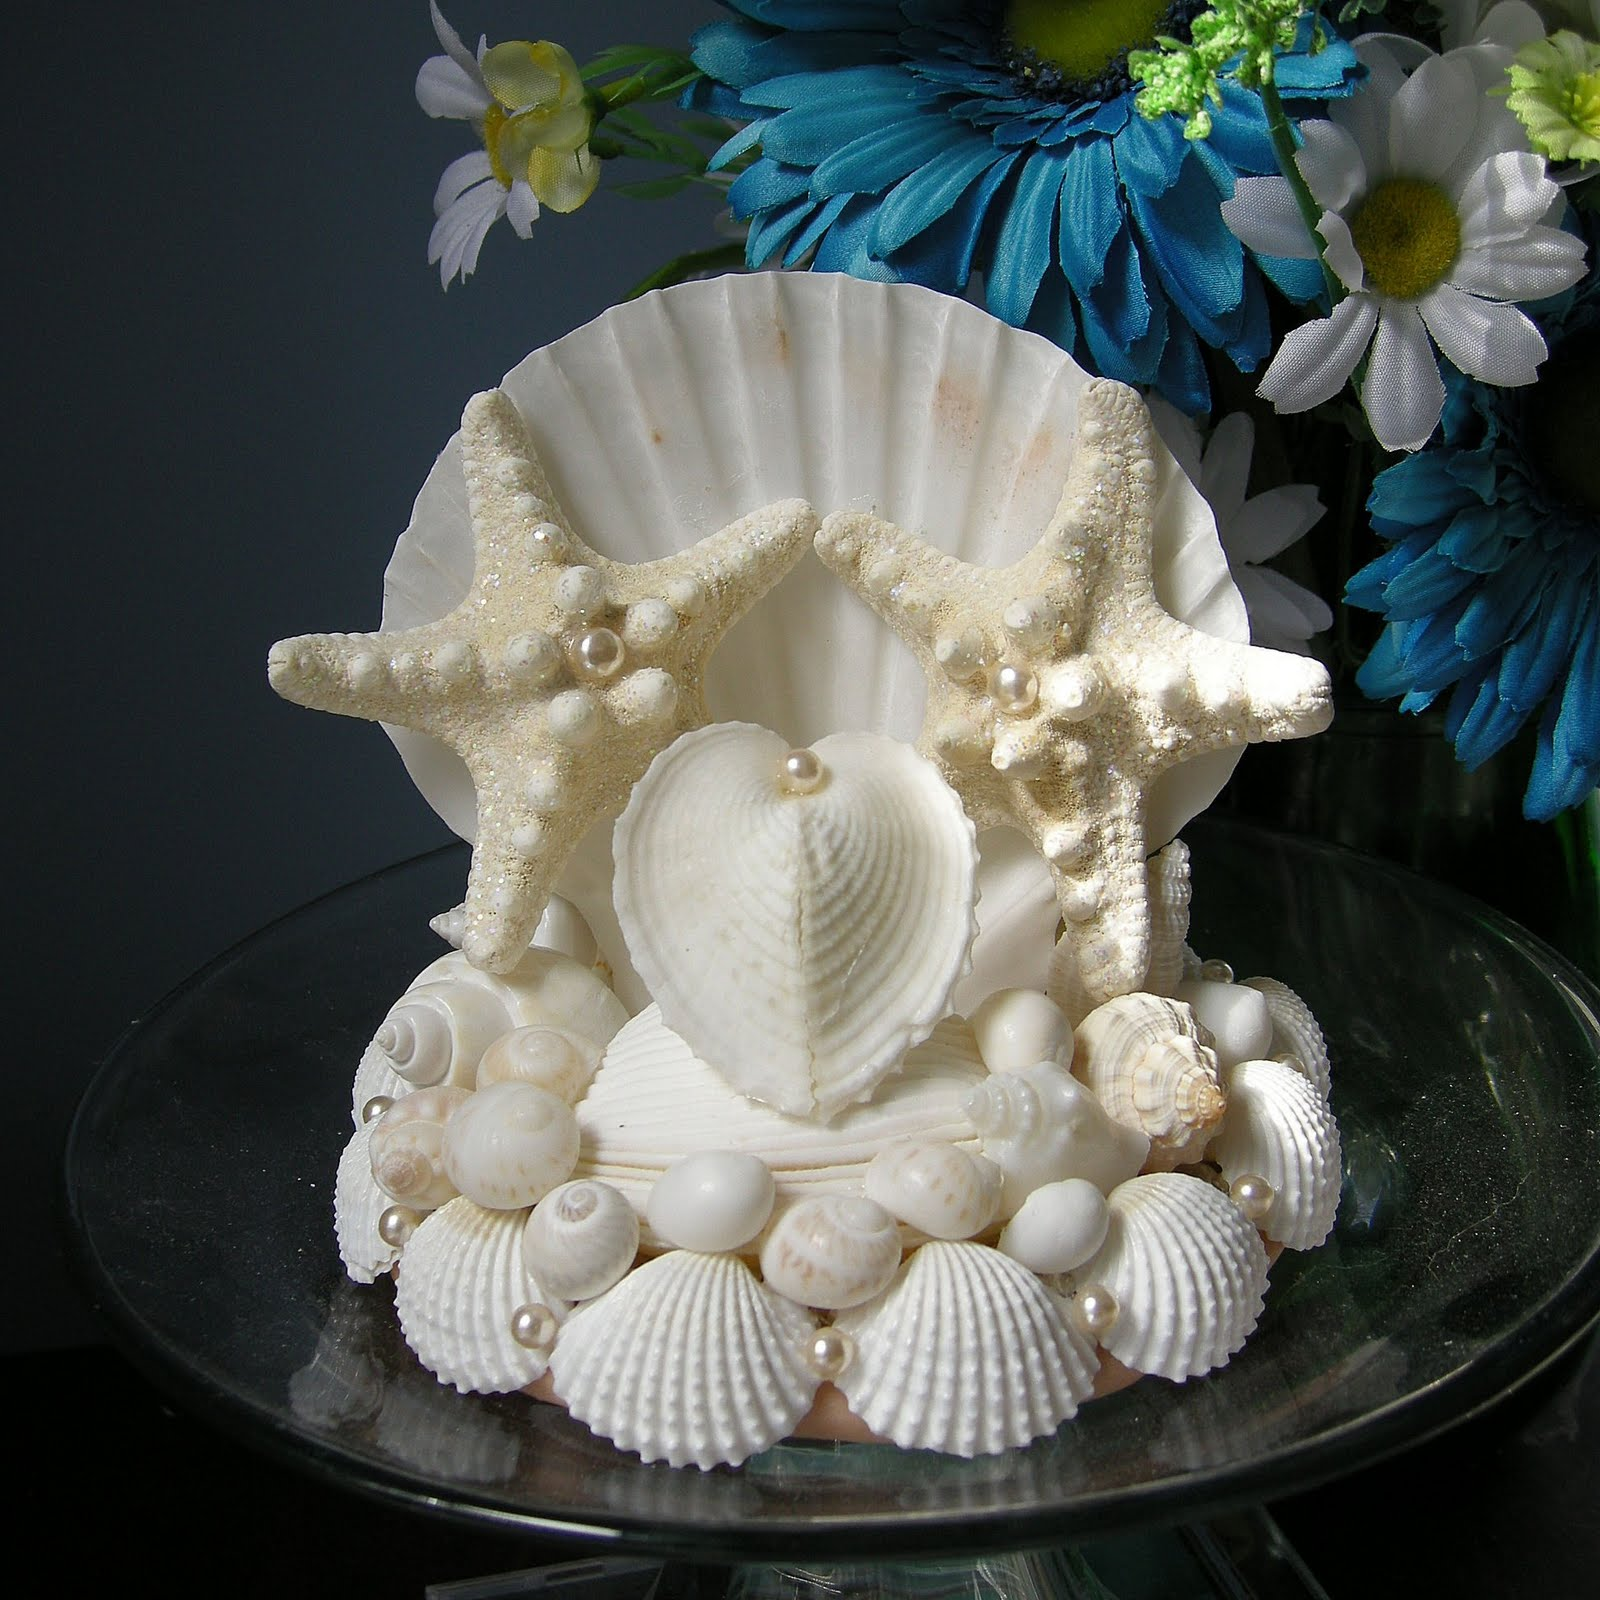 shellscapes two stars one heart seashell wedding cake topper. Black Bedroom Furniture Sets. Home Design Ideas